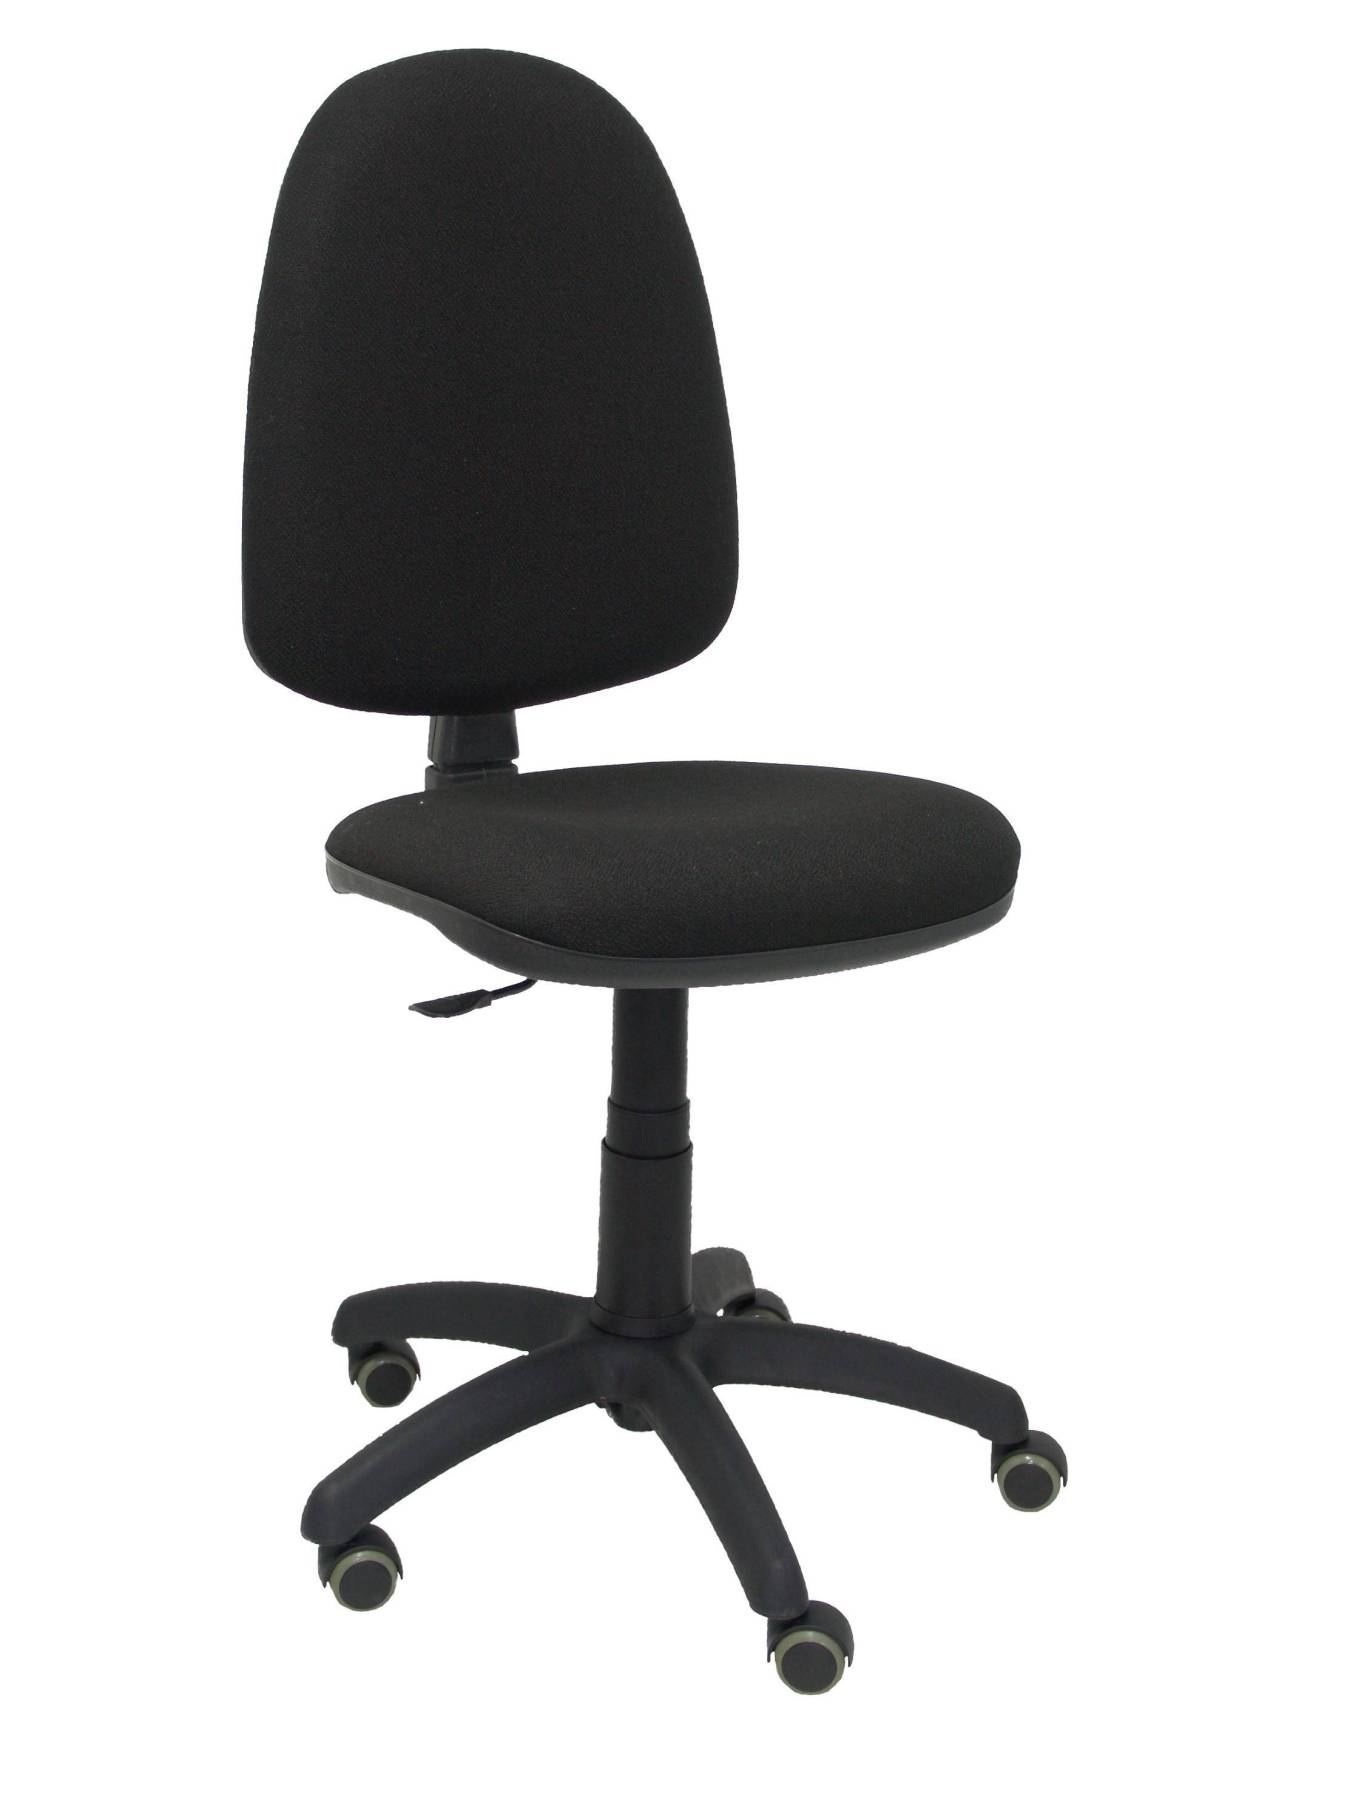 Ergonomic Office Chair With Mechanism Synchro And Adjustable Height-Seat And Back Upholstered In Fabric BALI Co